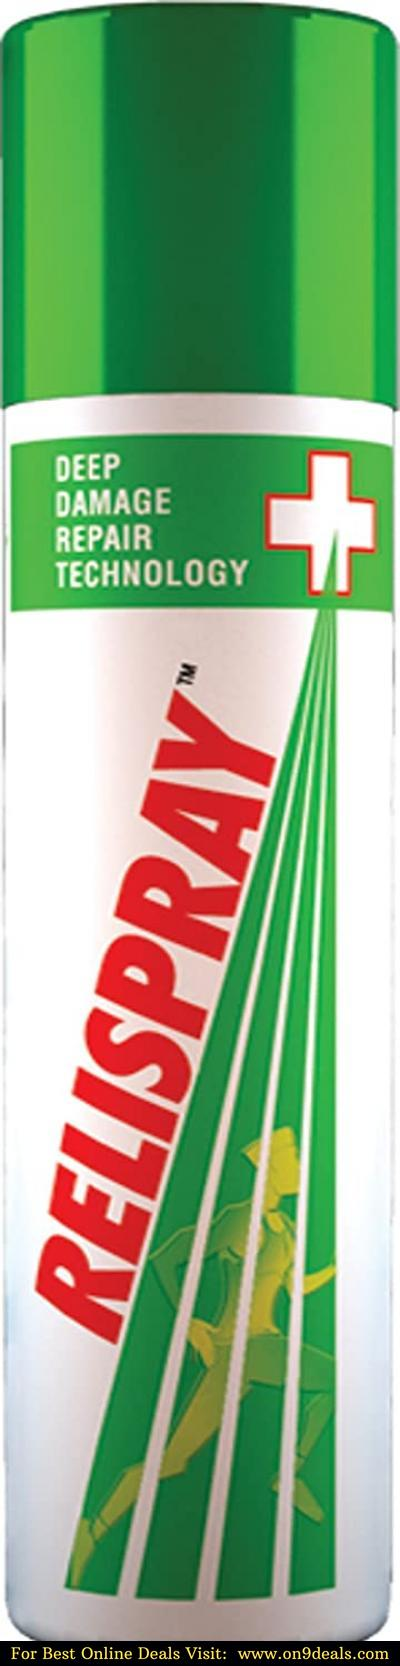 Relispray Pain Relief Spray 49 g